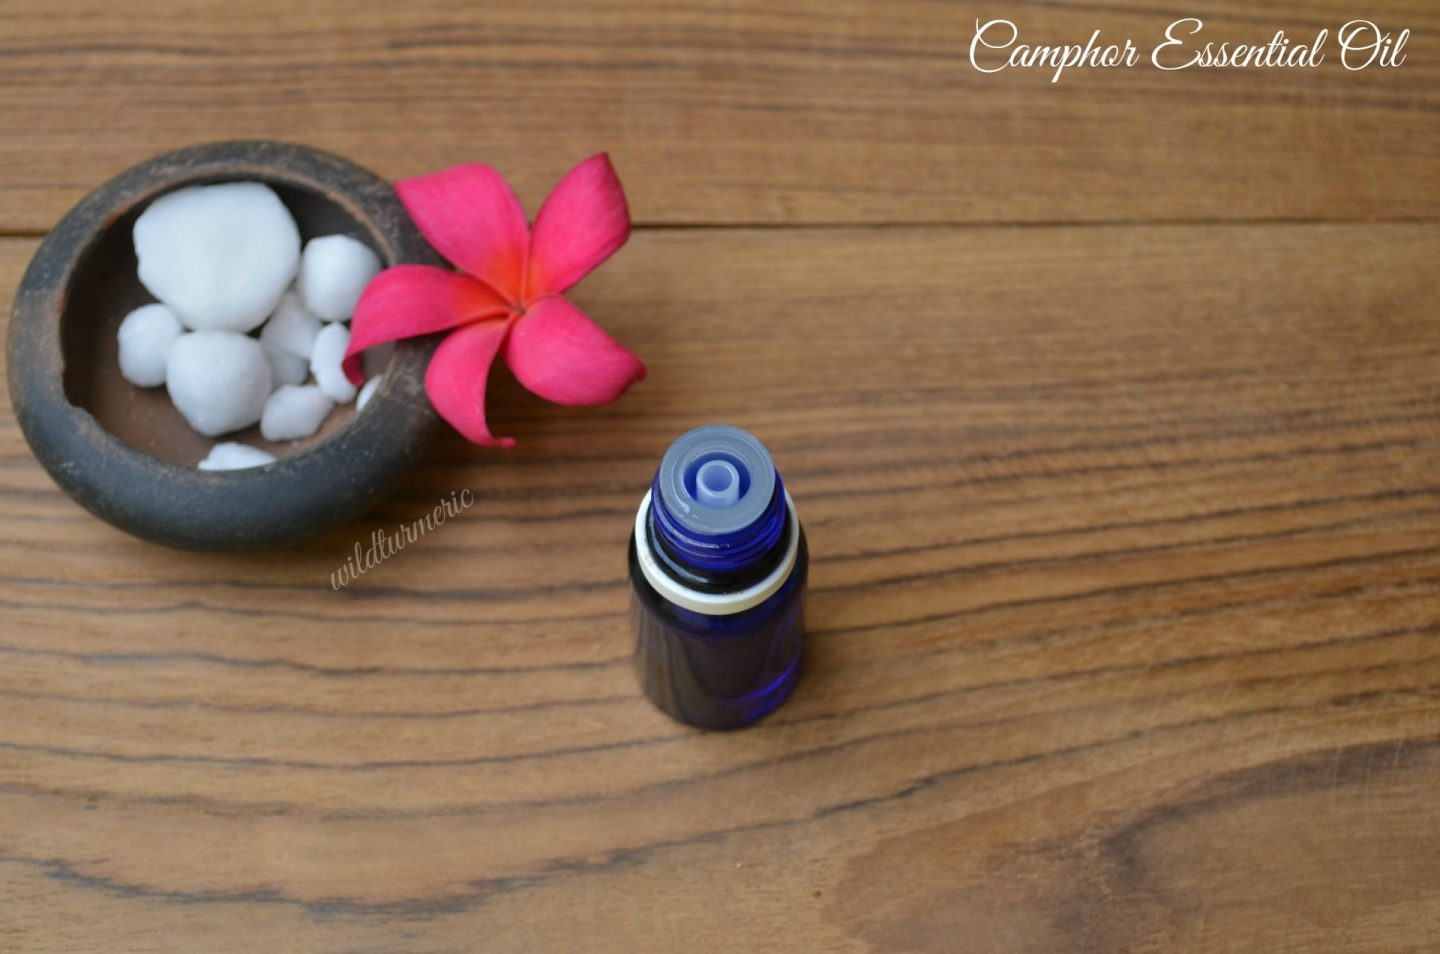 camphor oil benefits